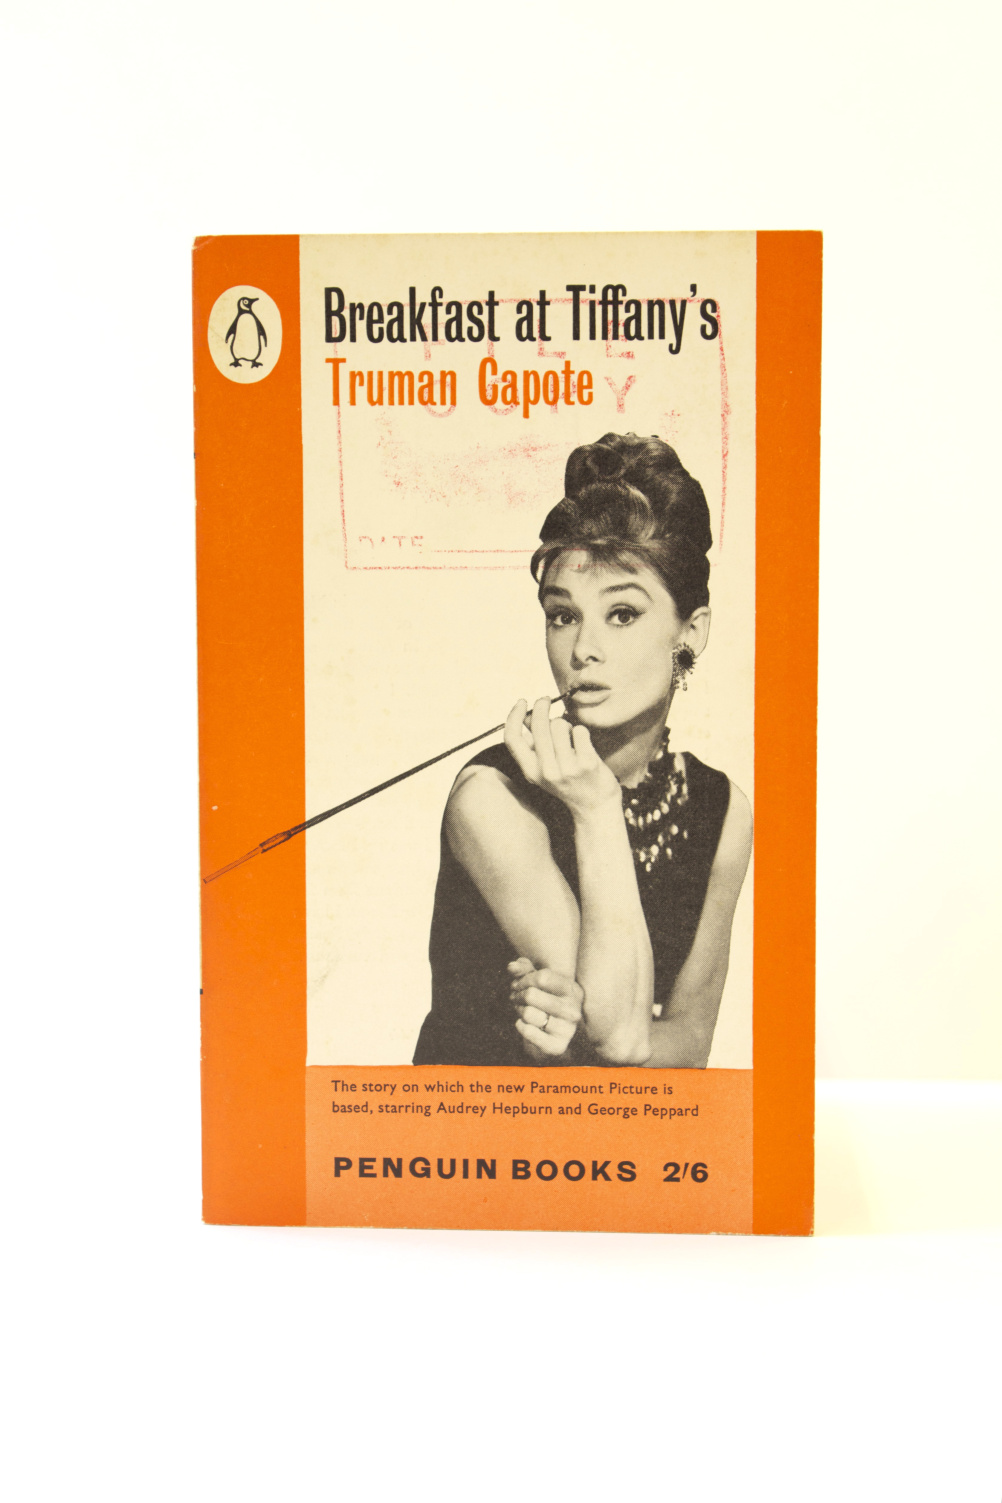 Breakfast At Tiffany's, Truman Capote